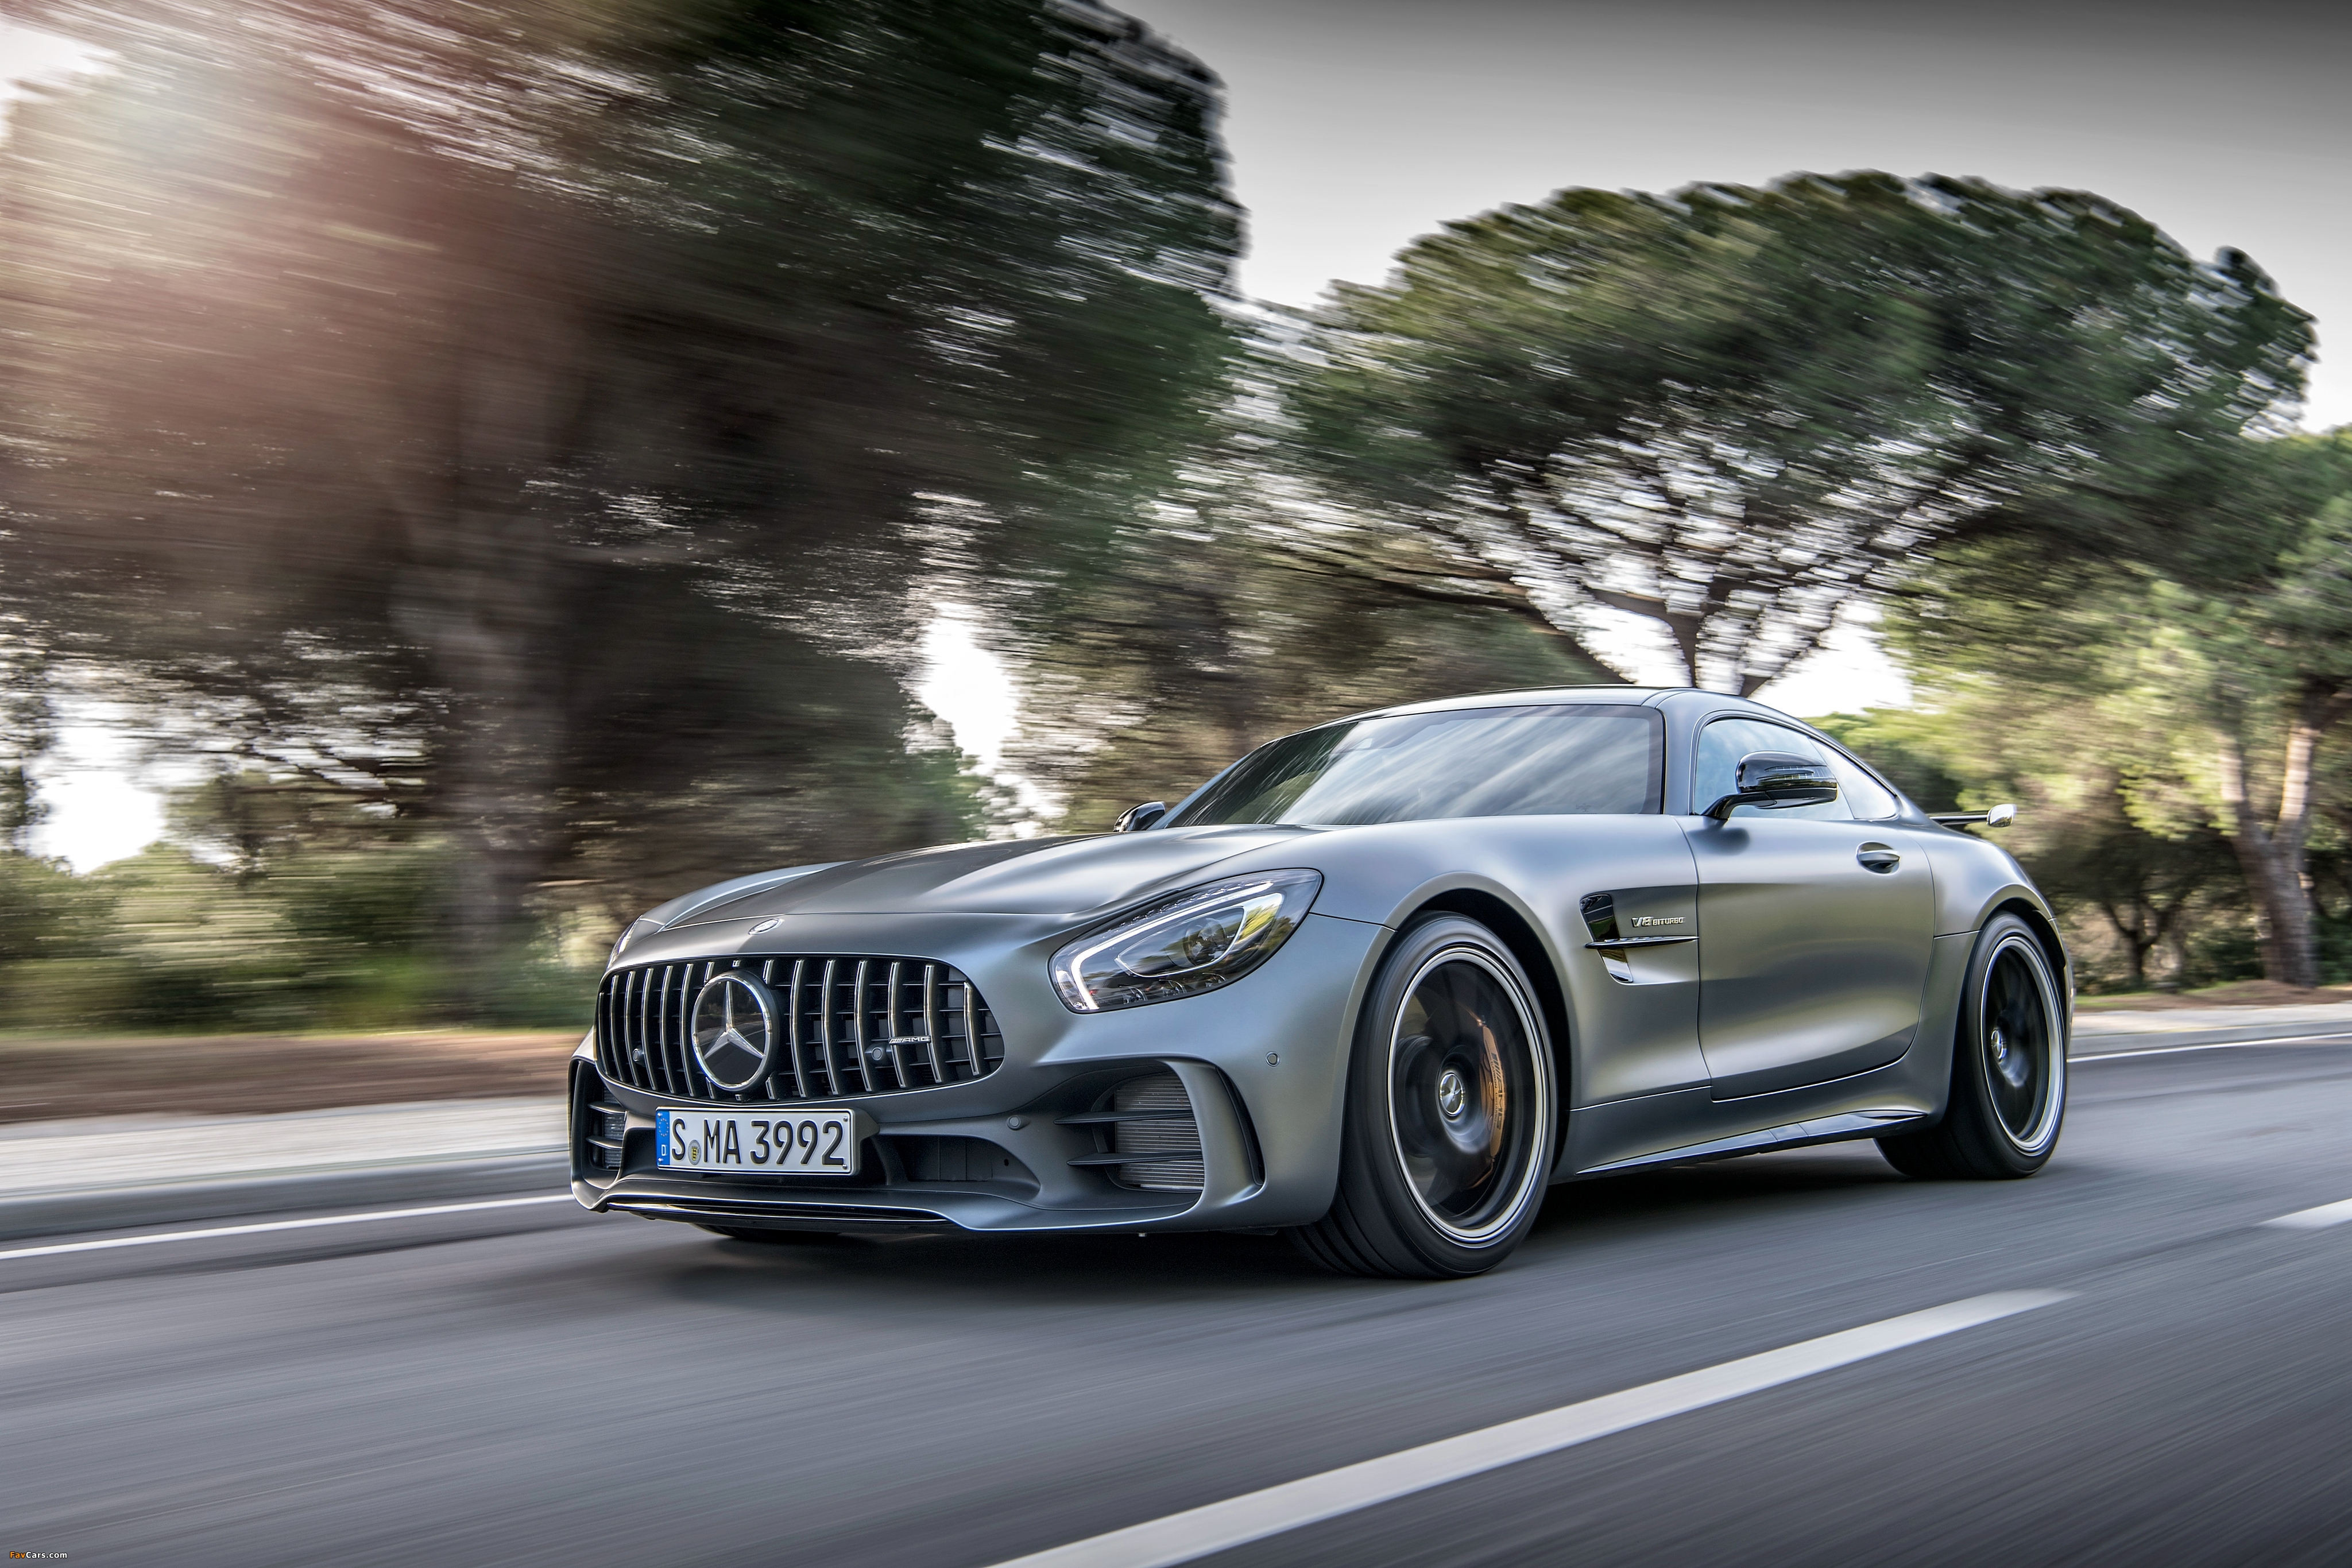 Mercedes-AMG GT R (C190) 2016 pictures (4096 x 2731)